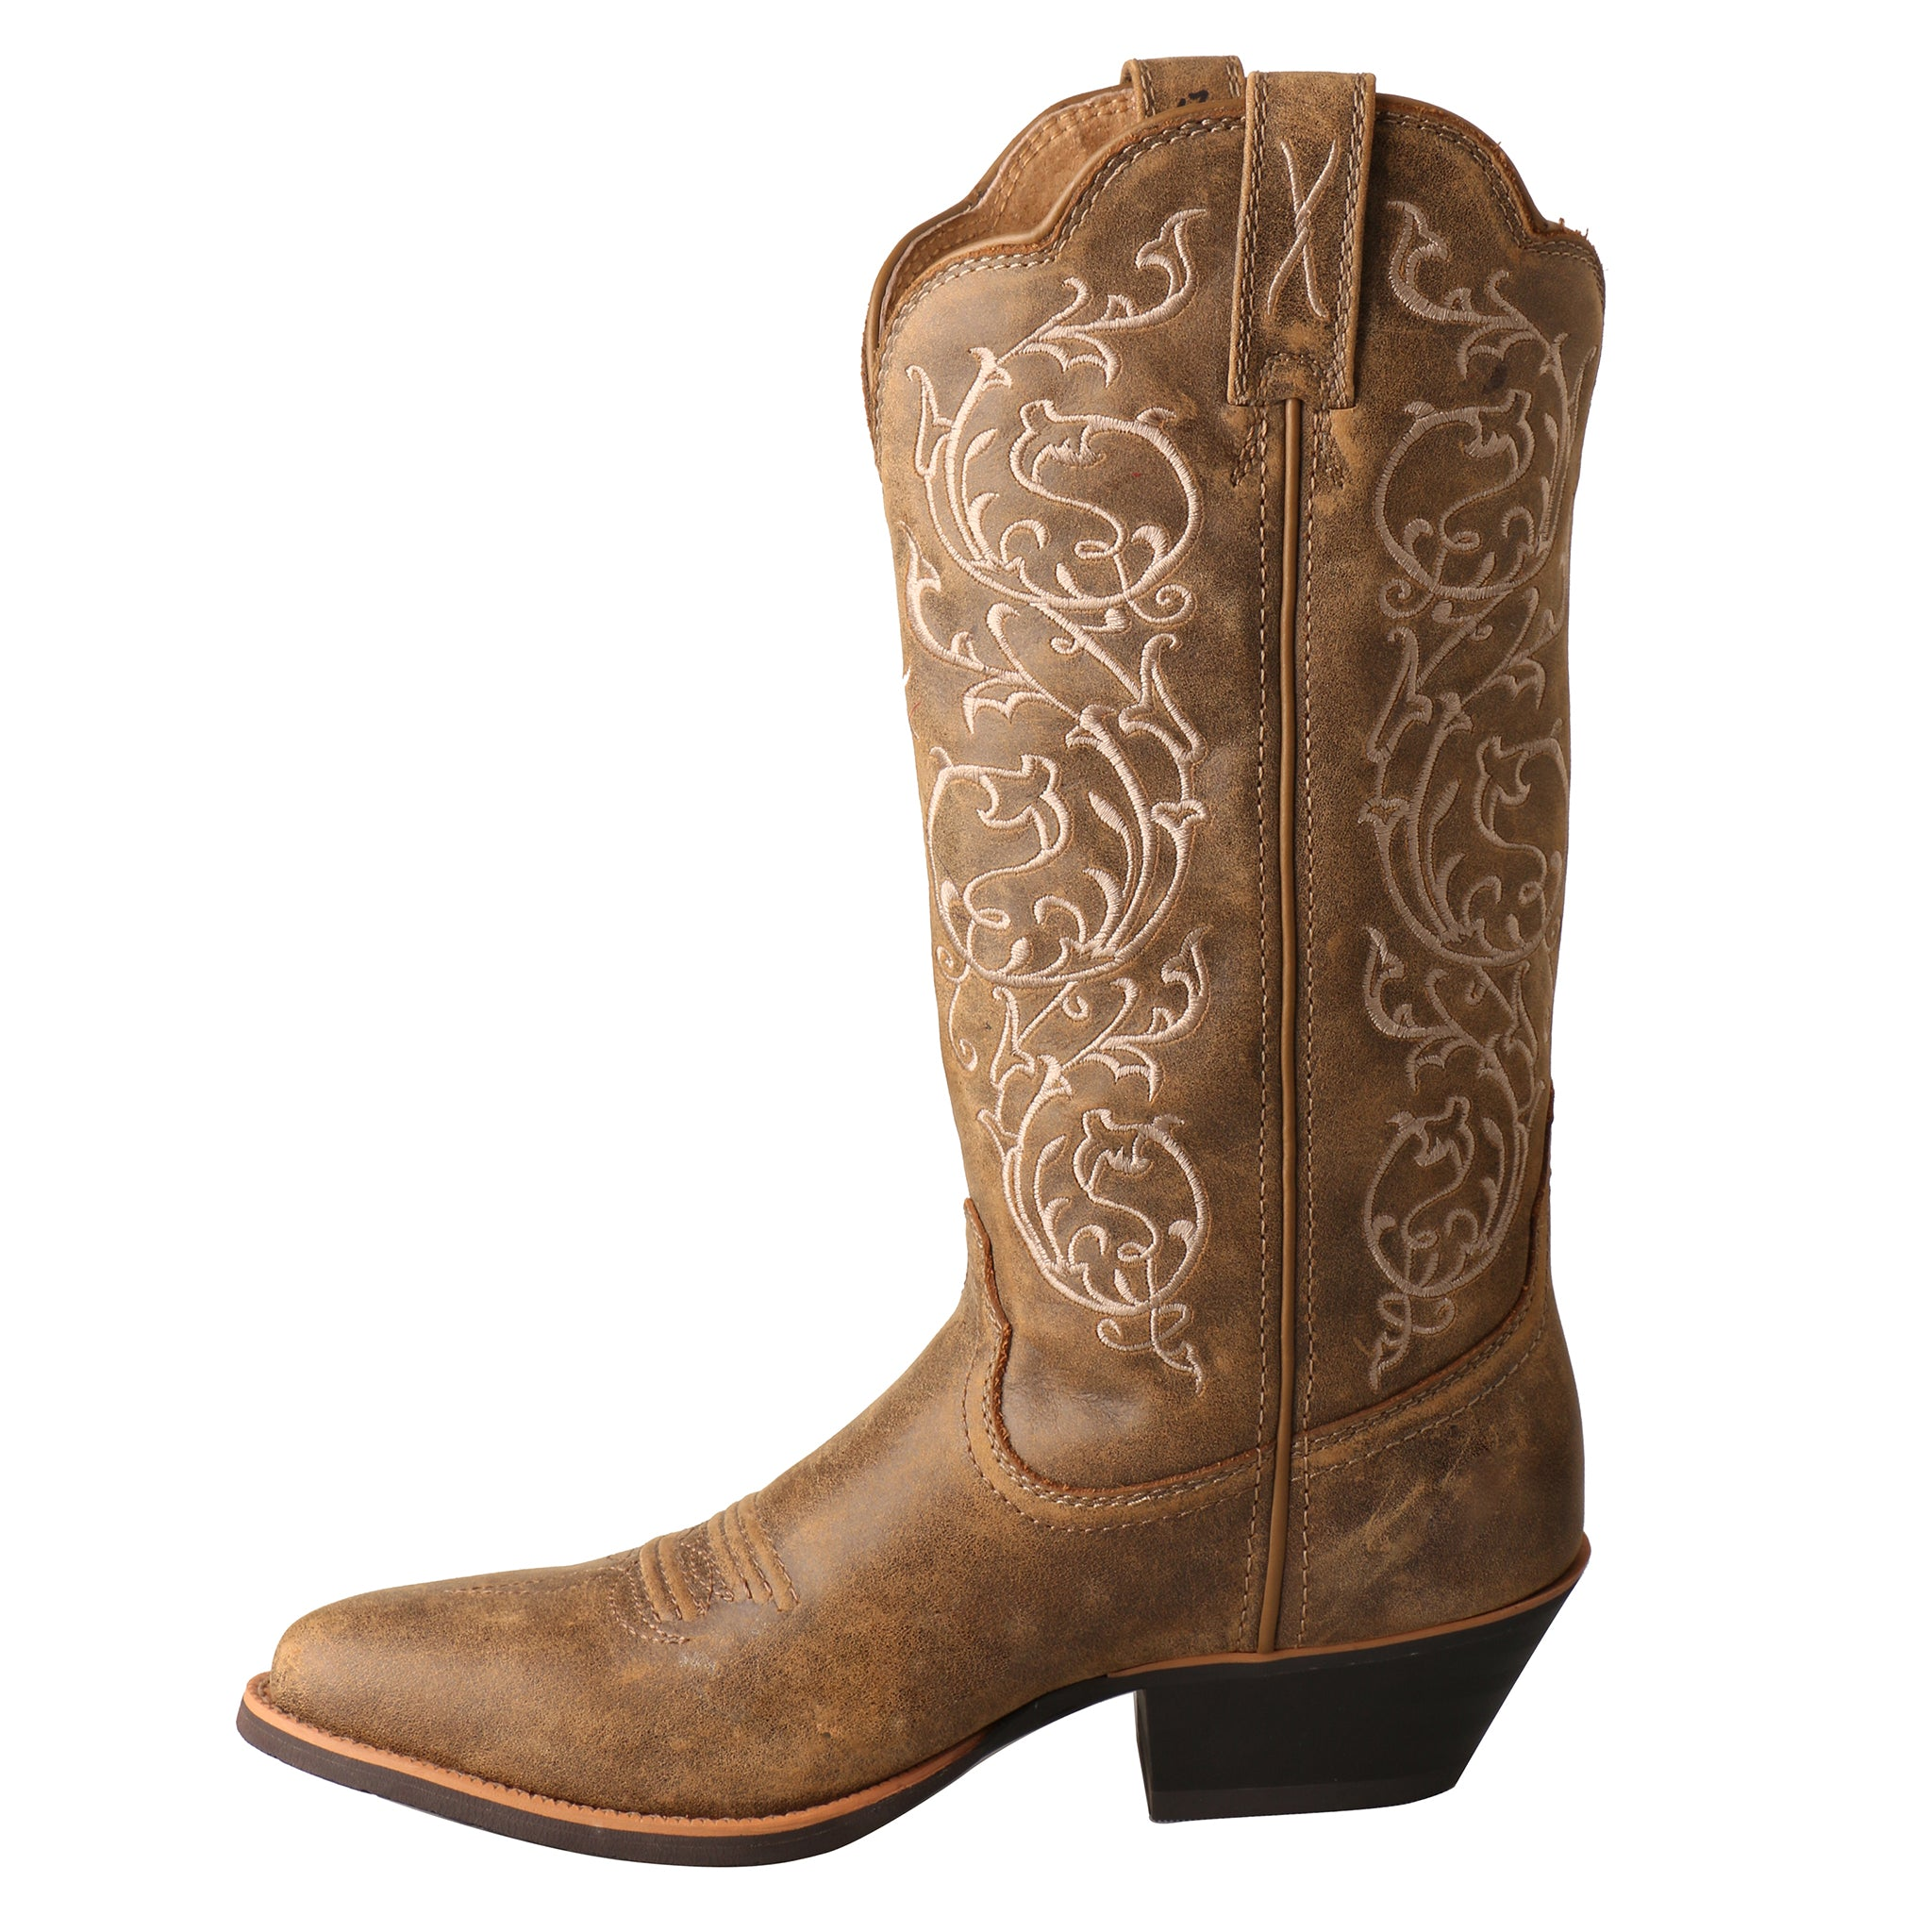 Picture of the outter side of the Women's Twisted X Western Boot WWT0025